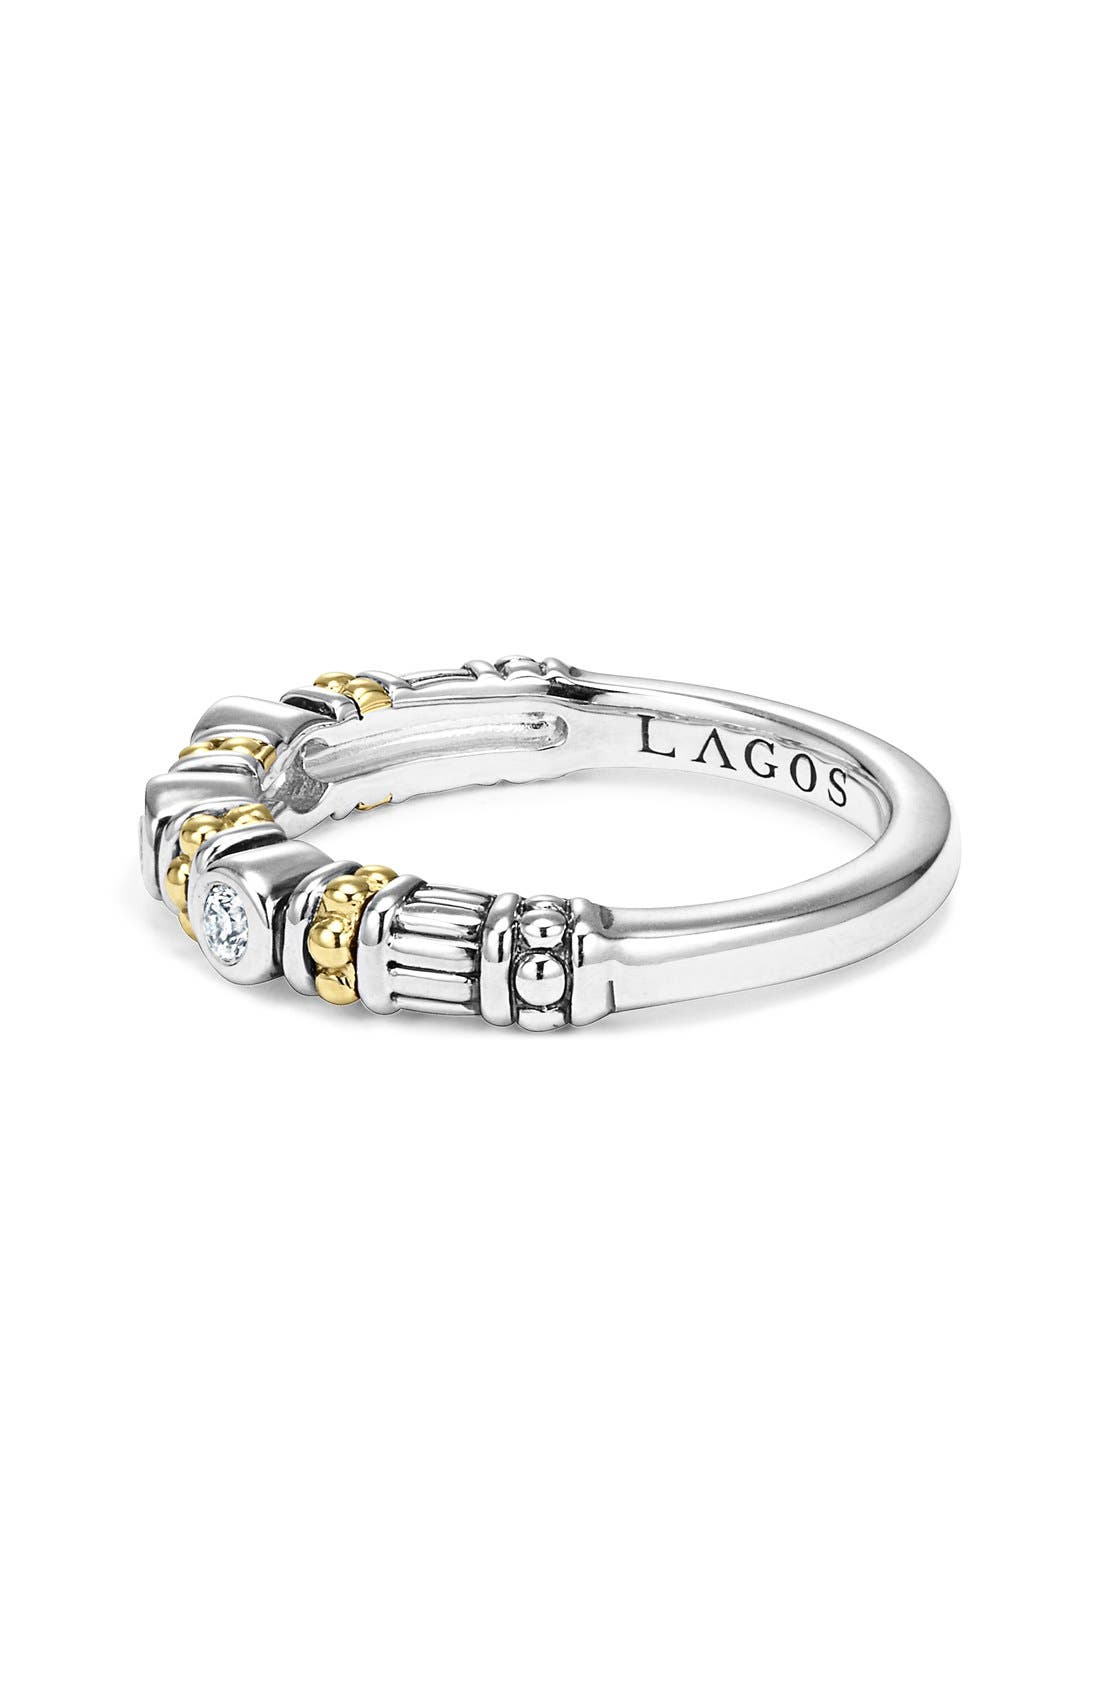 Alternate Image 3  - LAGOS Three Diamond Stacking Ring